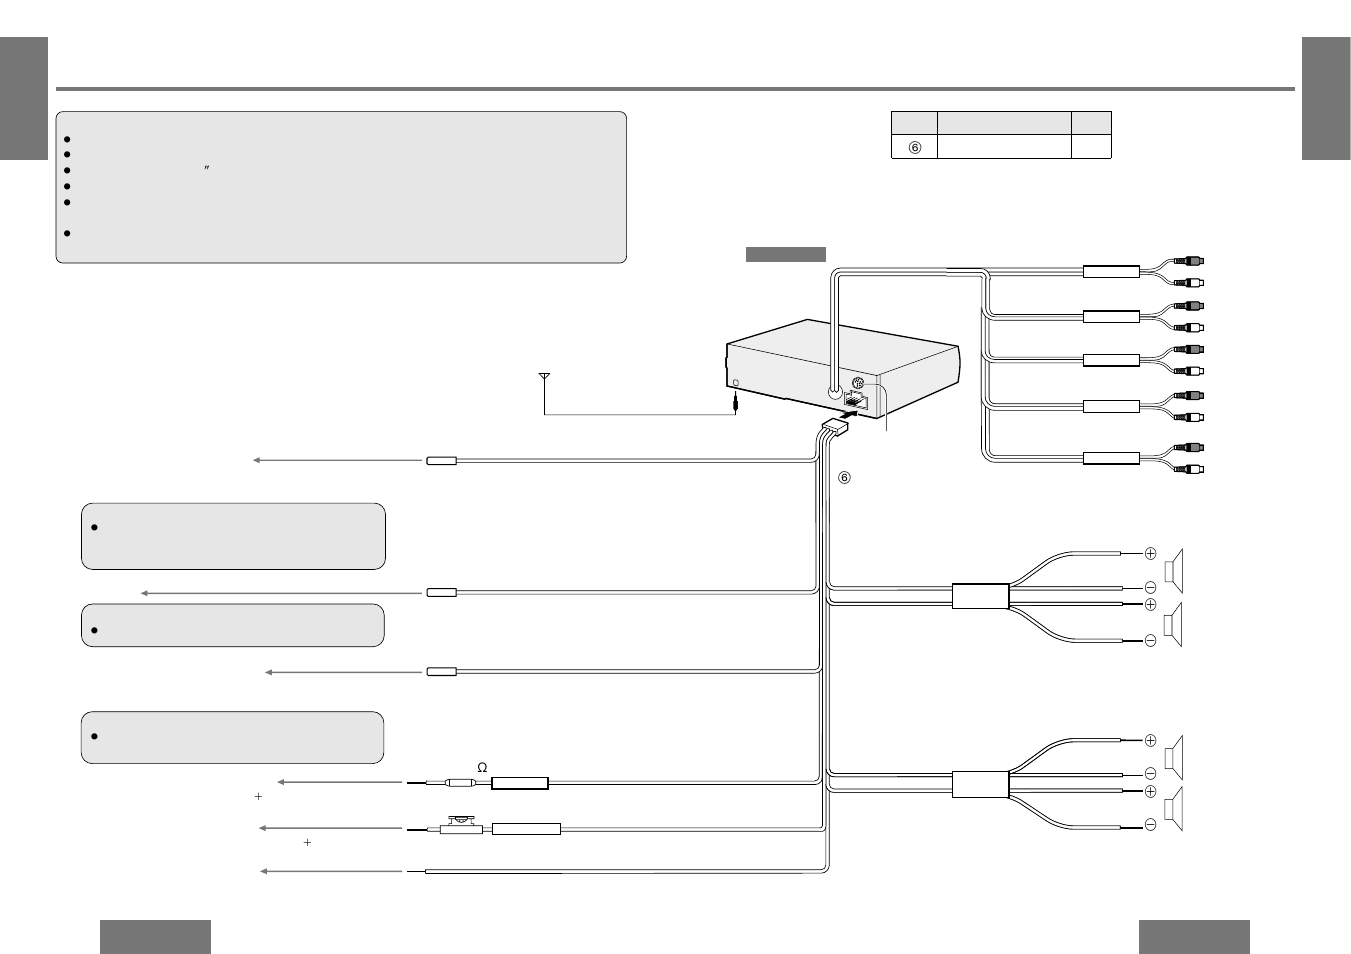 Electrical Connections  Wiring Diagram